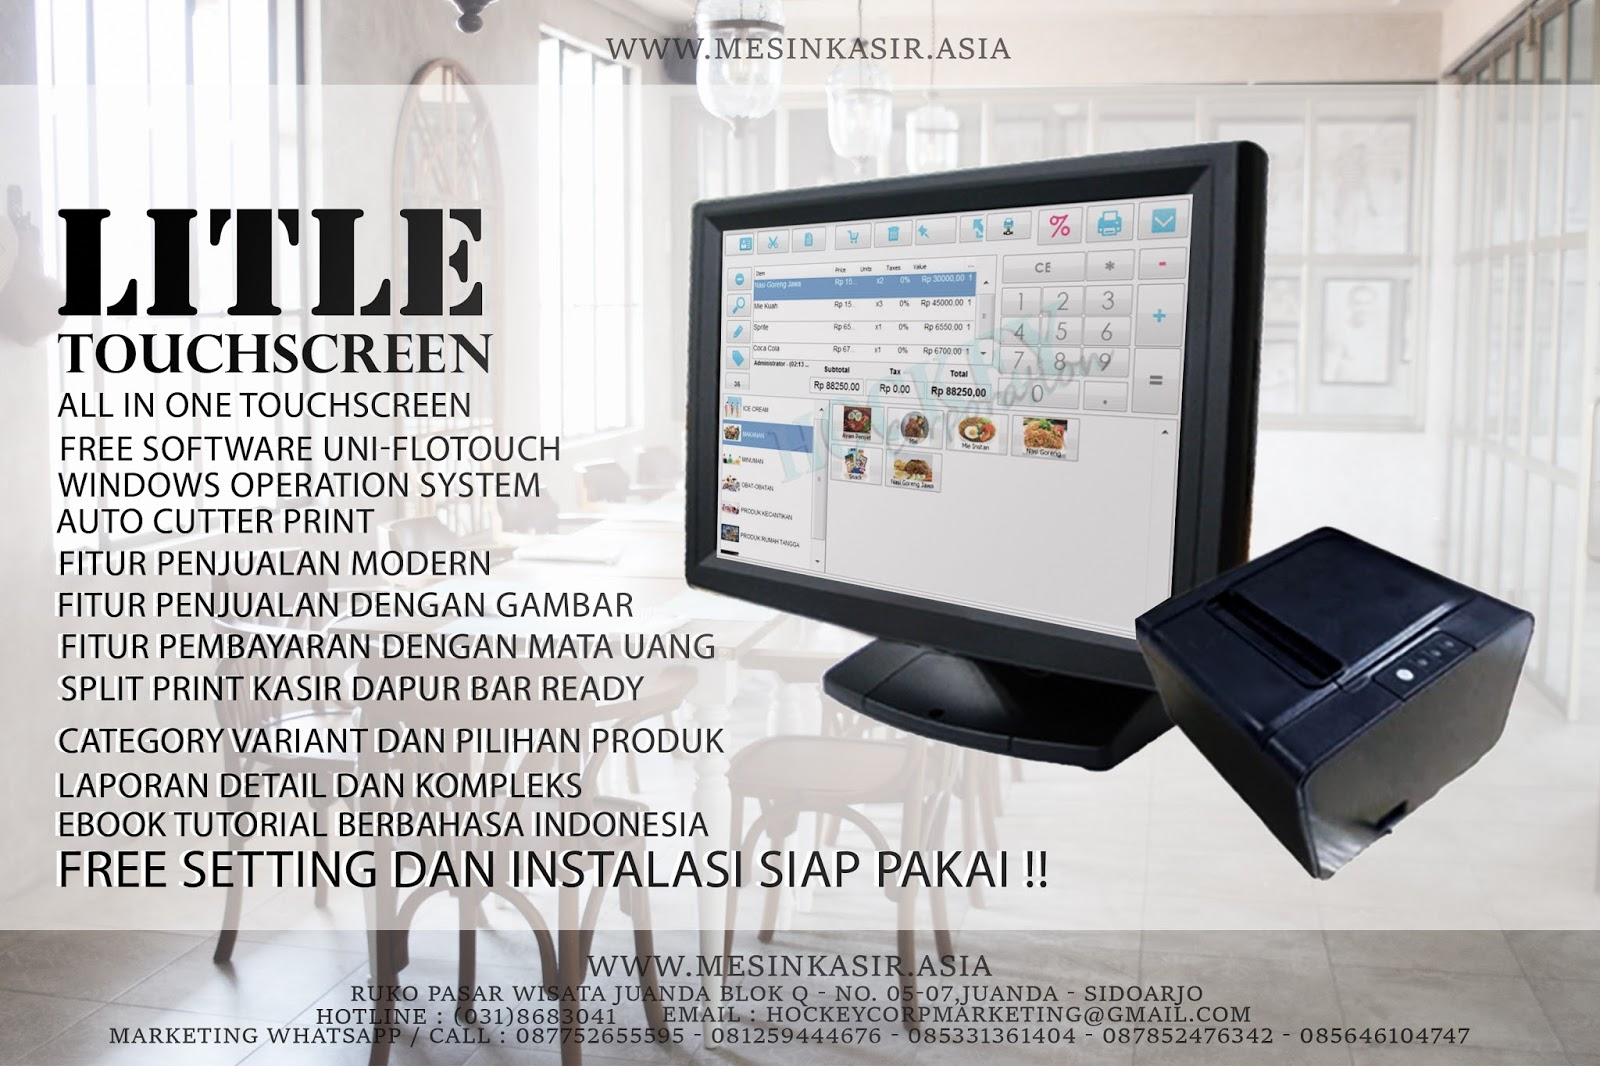 mesin kasir touchscreen,android,online,cloud,software